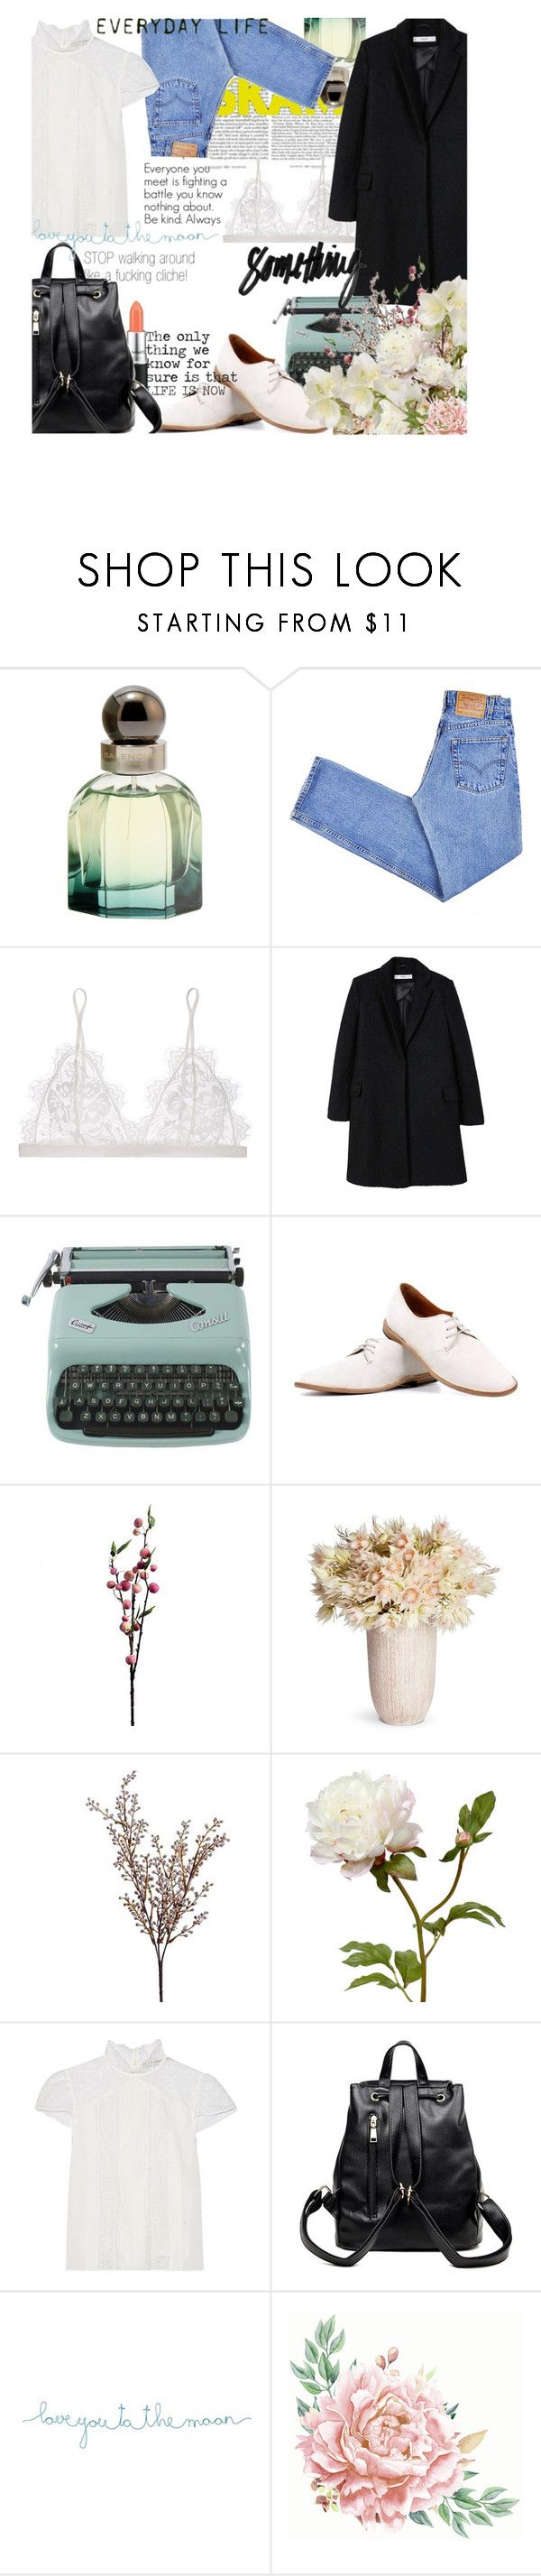 """""""First noora look from SKAM"""" by enjoyrosa ❤ liked on Polyvore featuring TBA, Balenciaga, Levi's, Anine Bing, MANGO, PANTANETTI, Wyld Home, Alice + Olivia and Natural Life"""